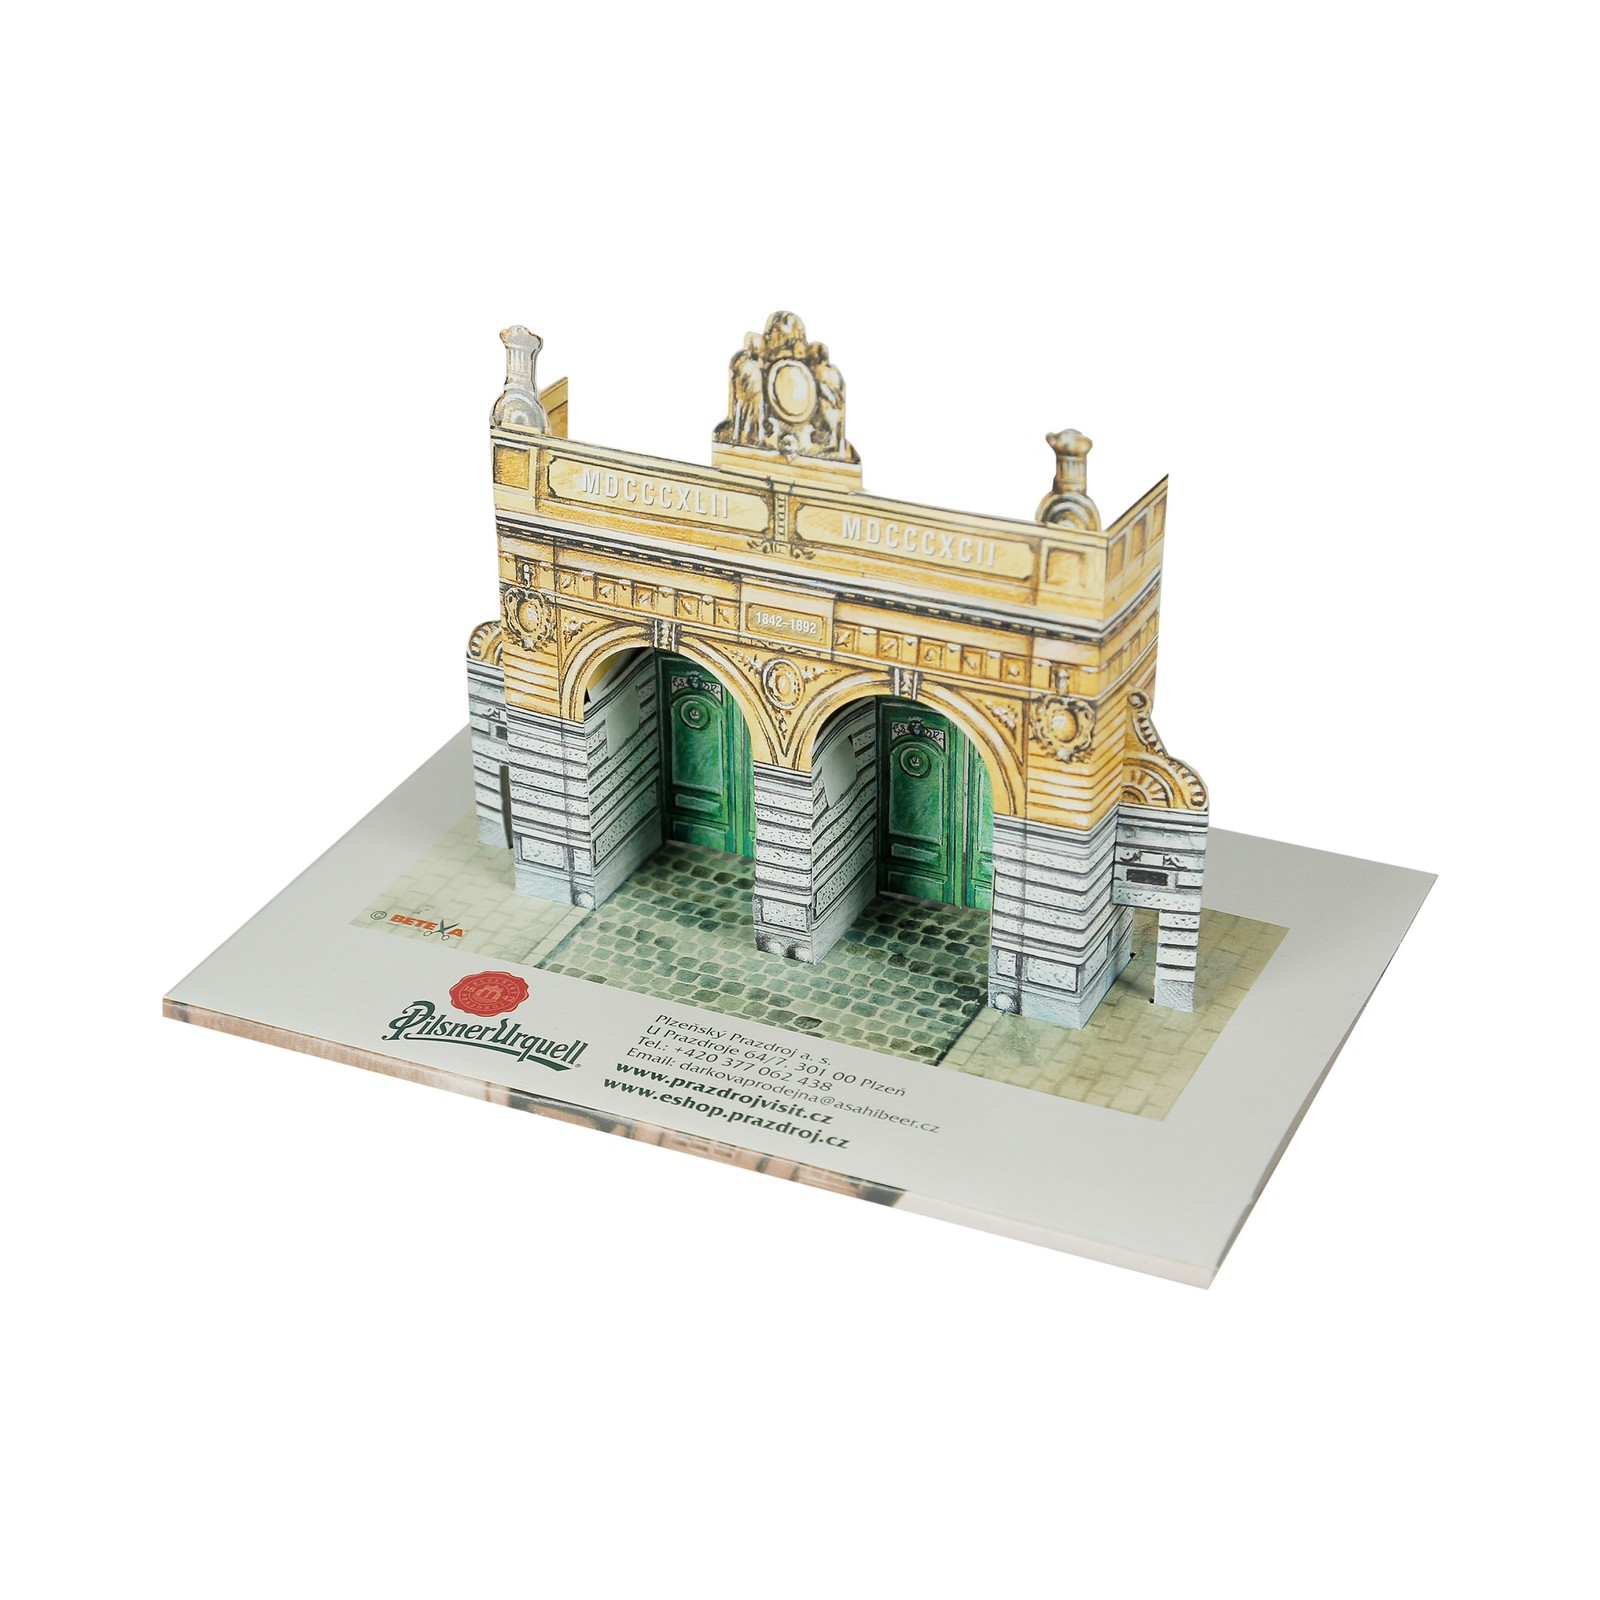 Model of the Pilsner Urquell Gate